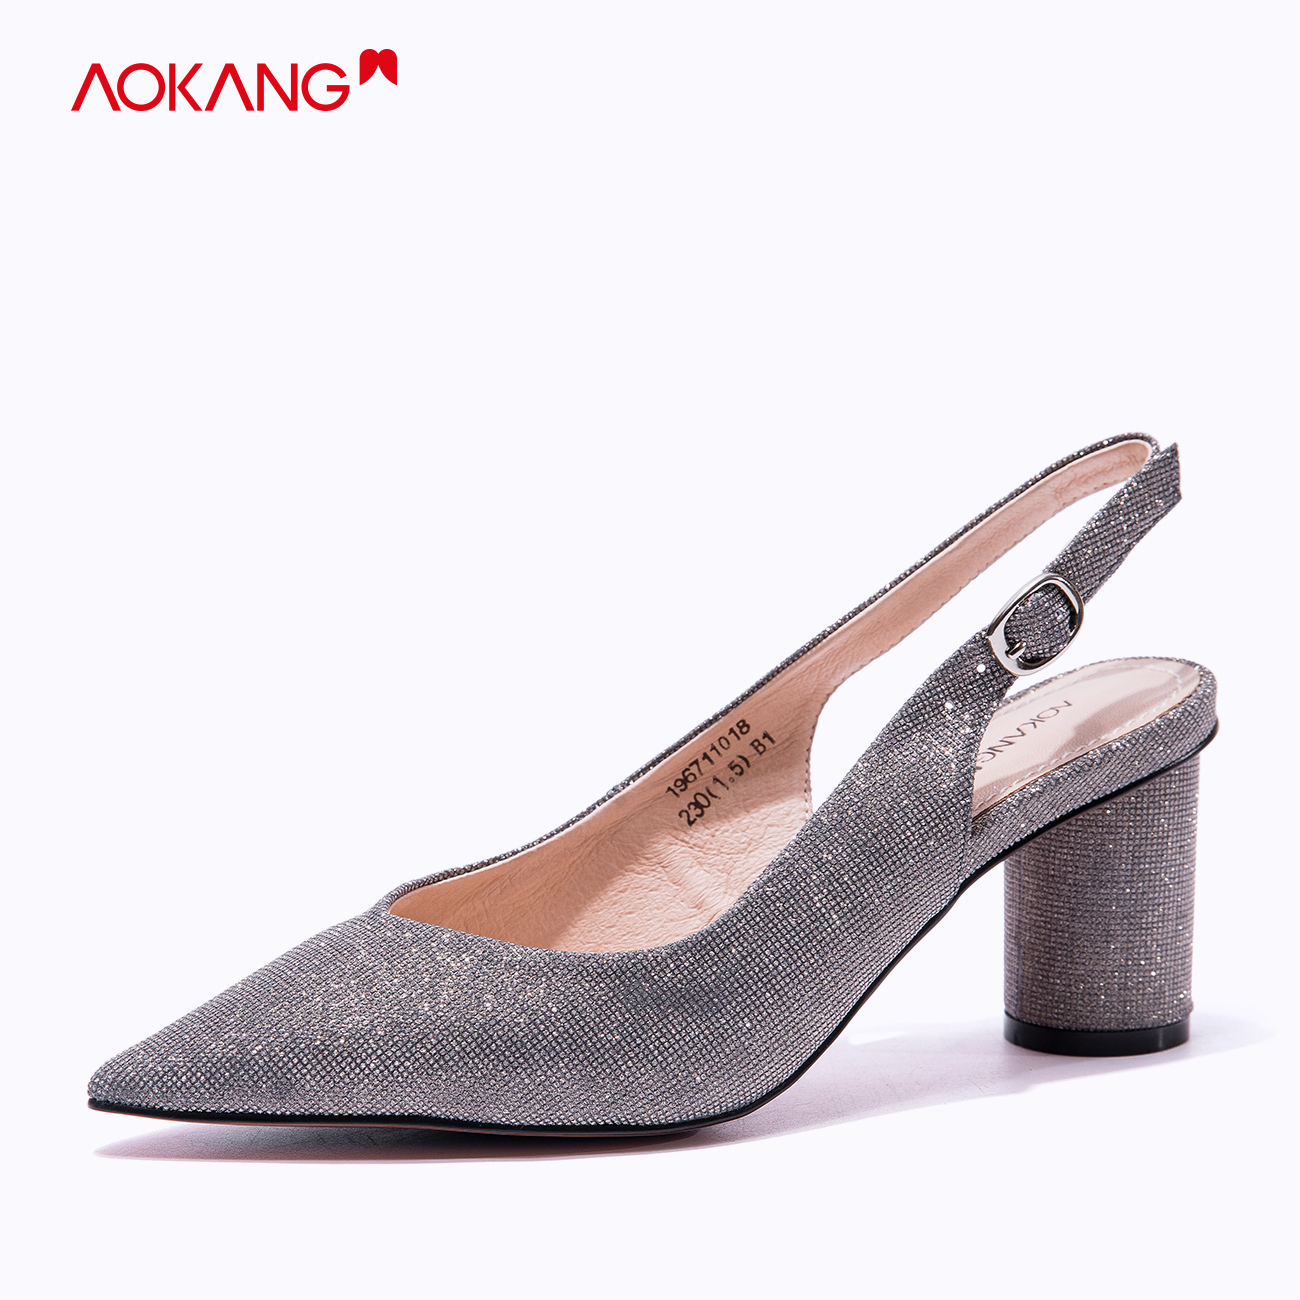 Aokang womens shoes 2021 summer new Gretel simple solid color pointed comfortable thick heel high heel sandals